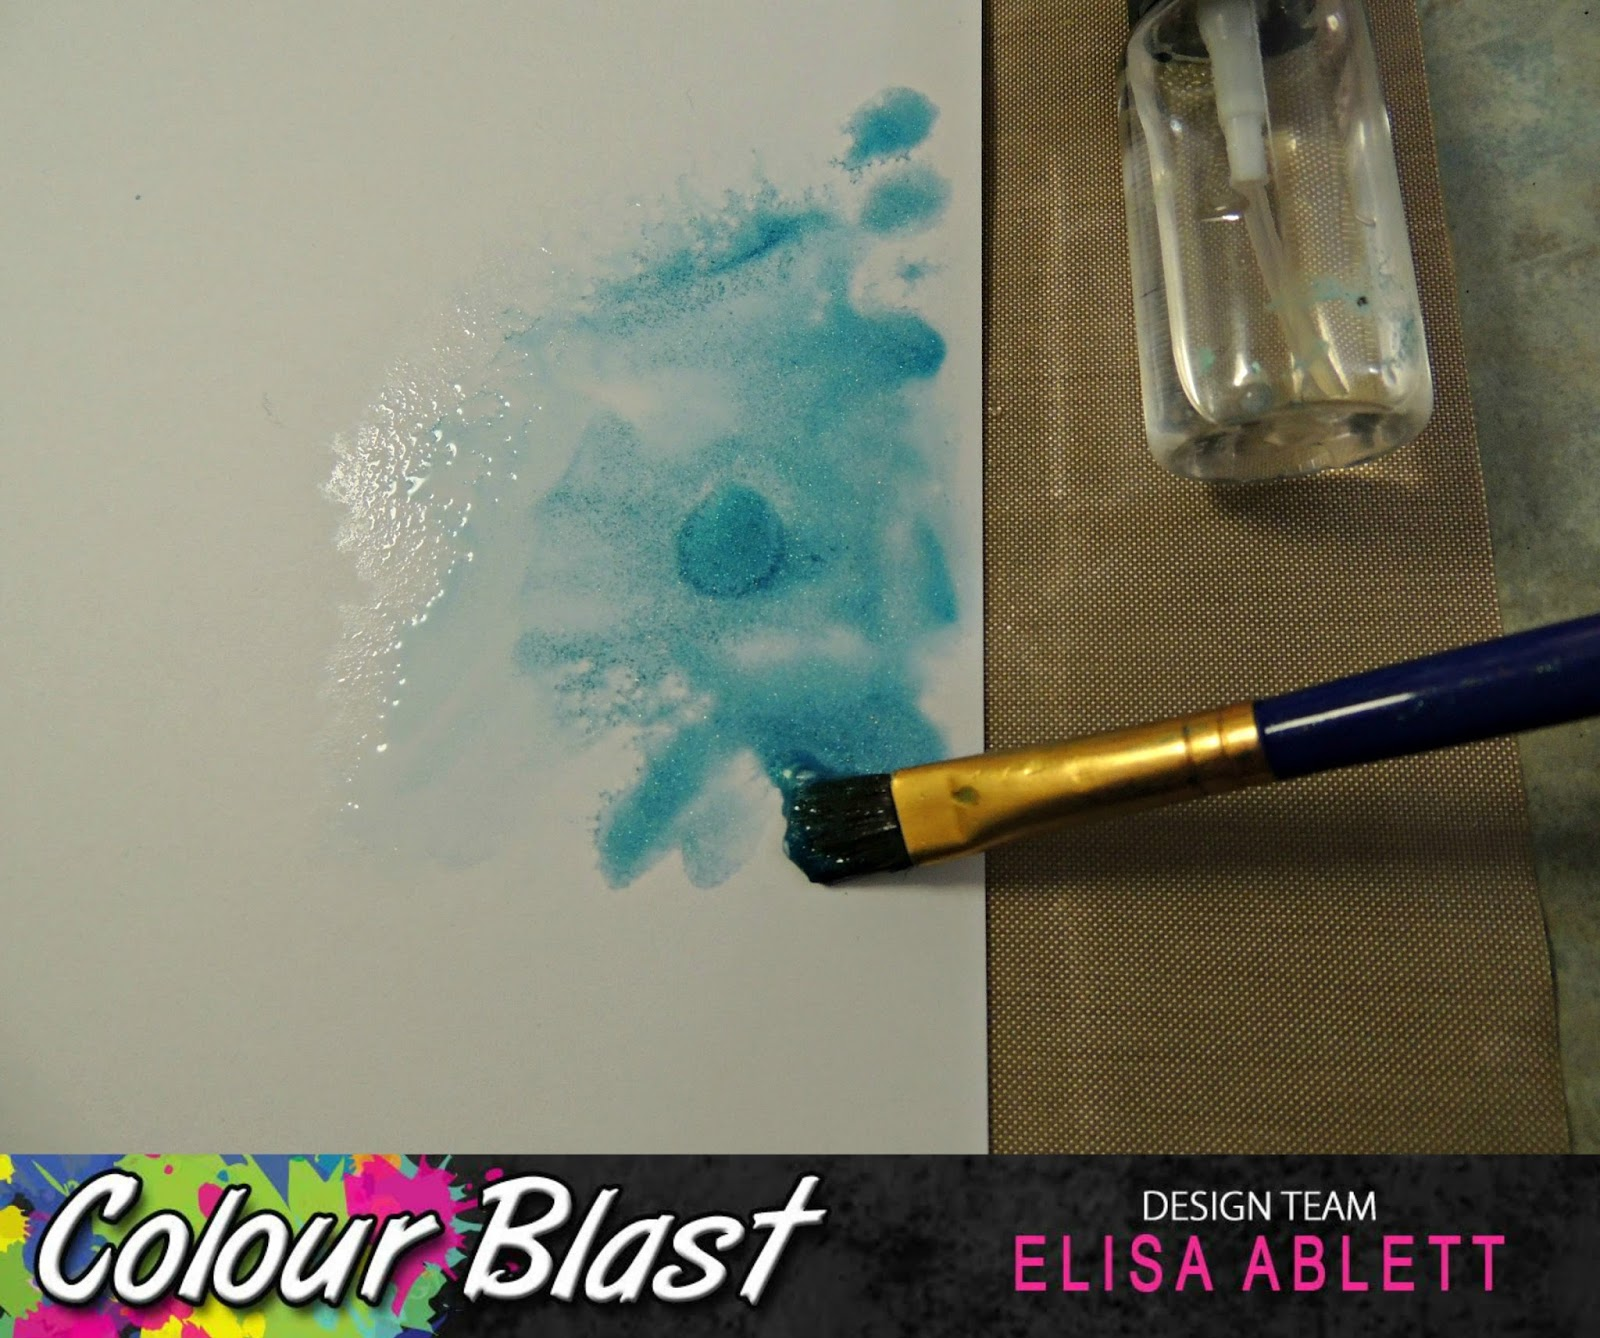 how to run the paint colours together like water